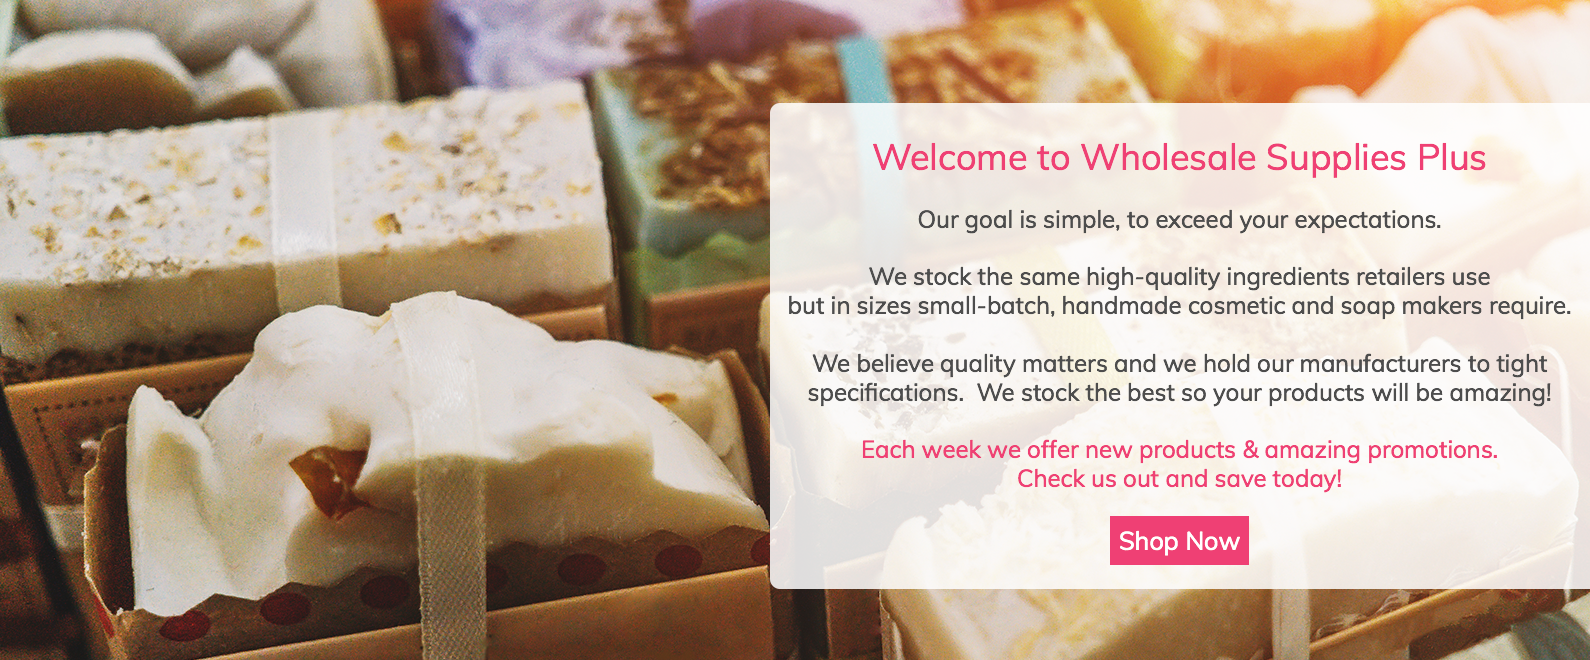 Wholesale Soap Making Supplies and Handmade Cosmetic